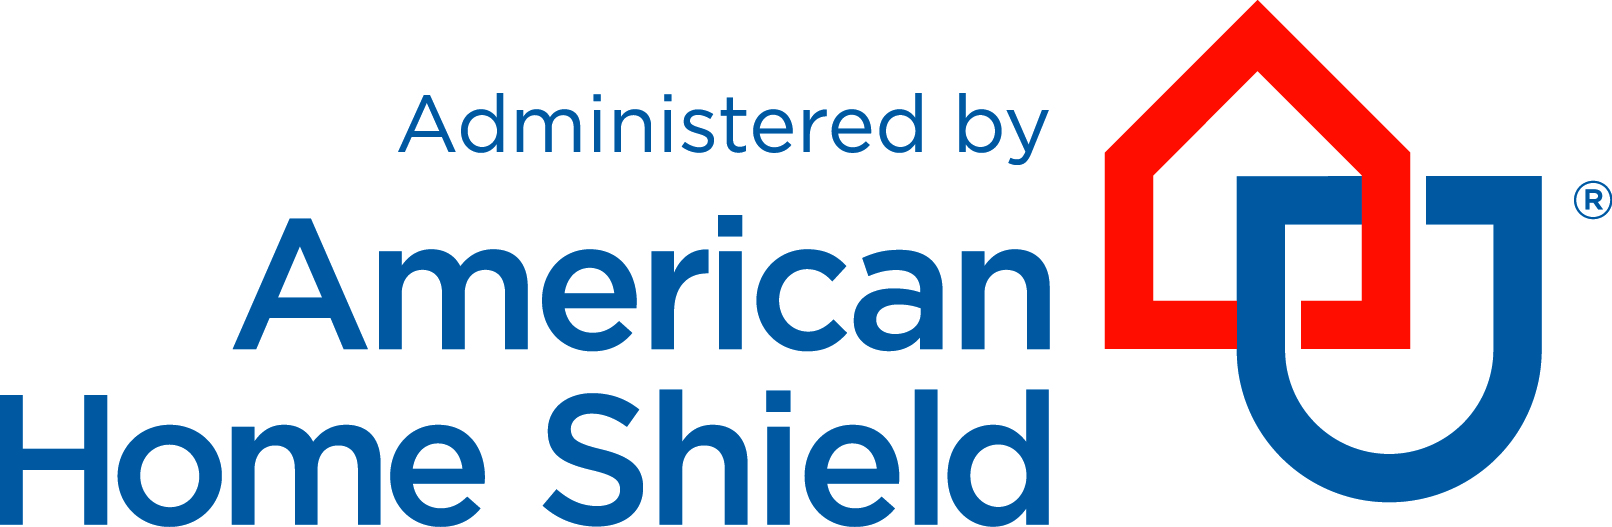 american home shield agent approved contractors